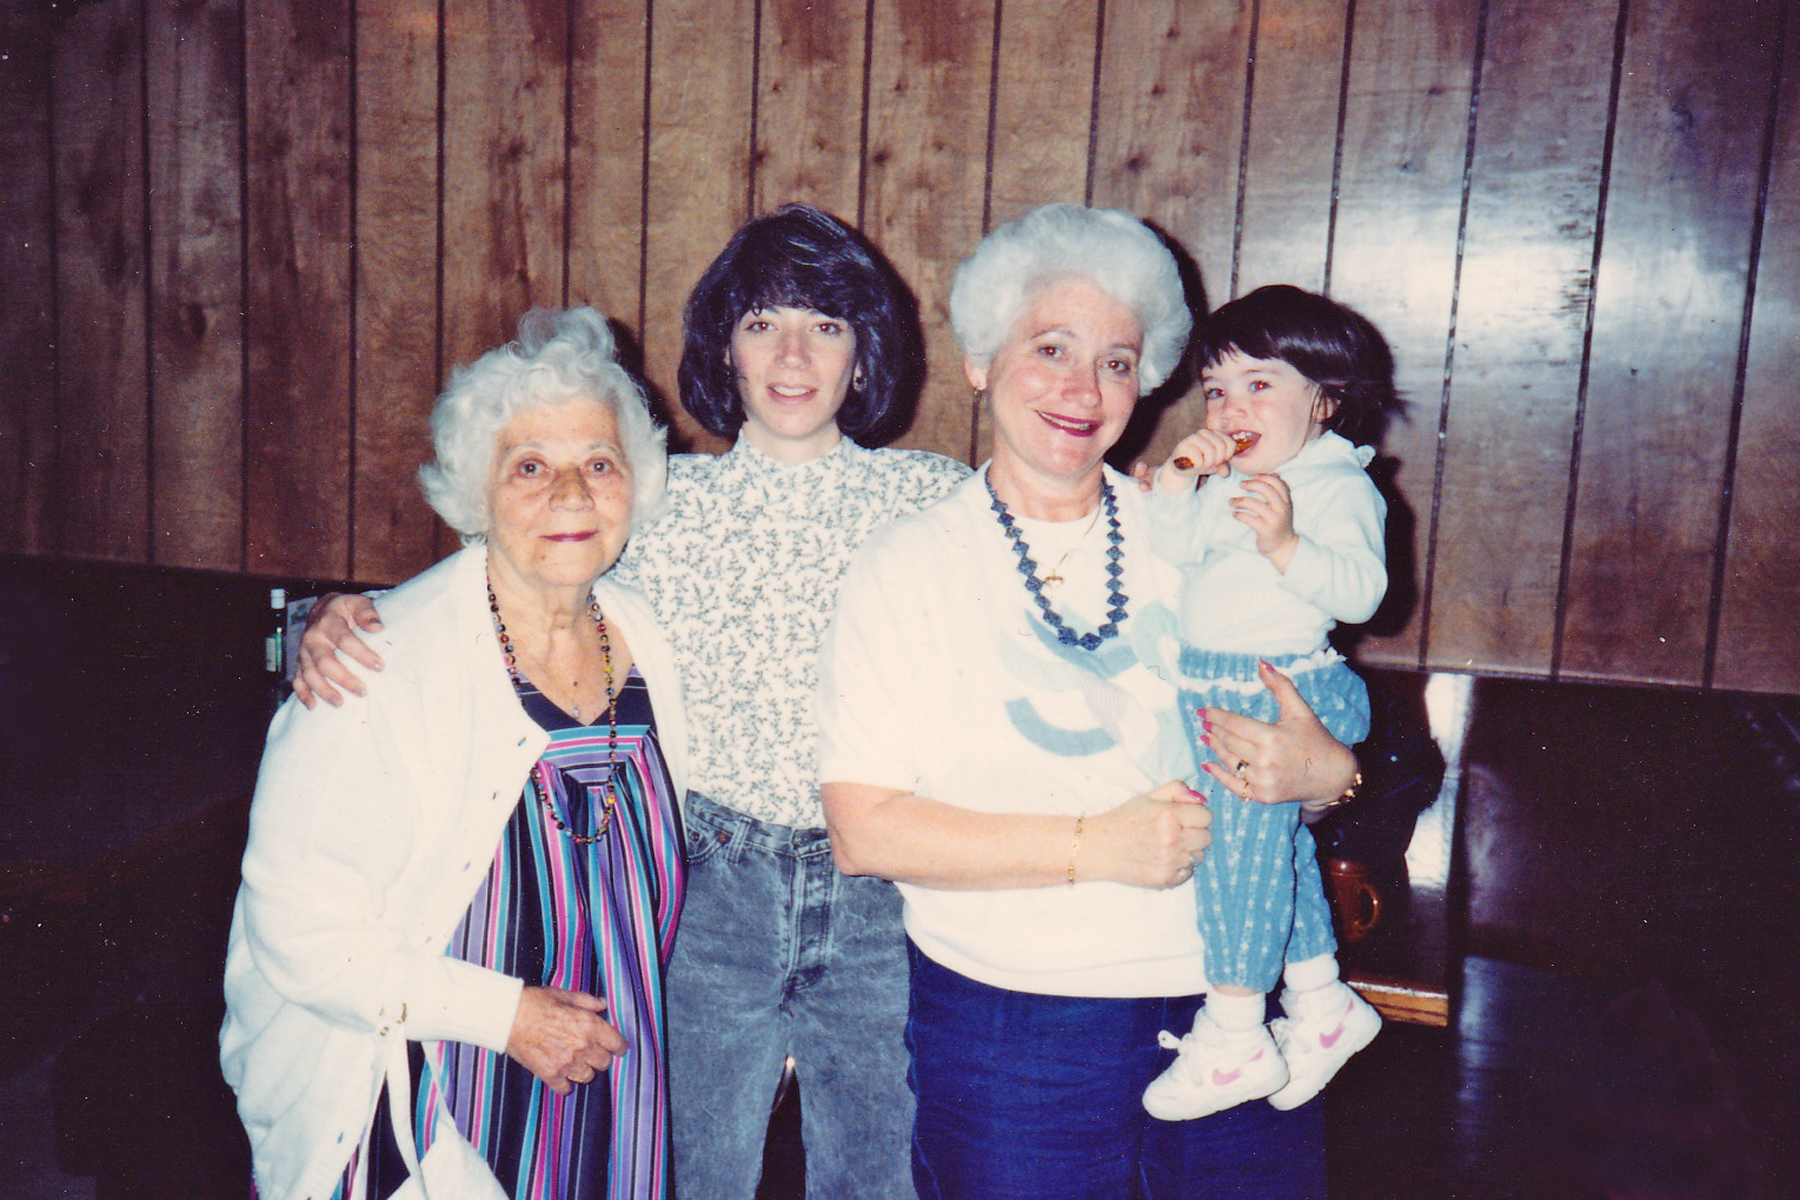 Four generations of women: My grandmother, me, my mom and my daughter